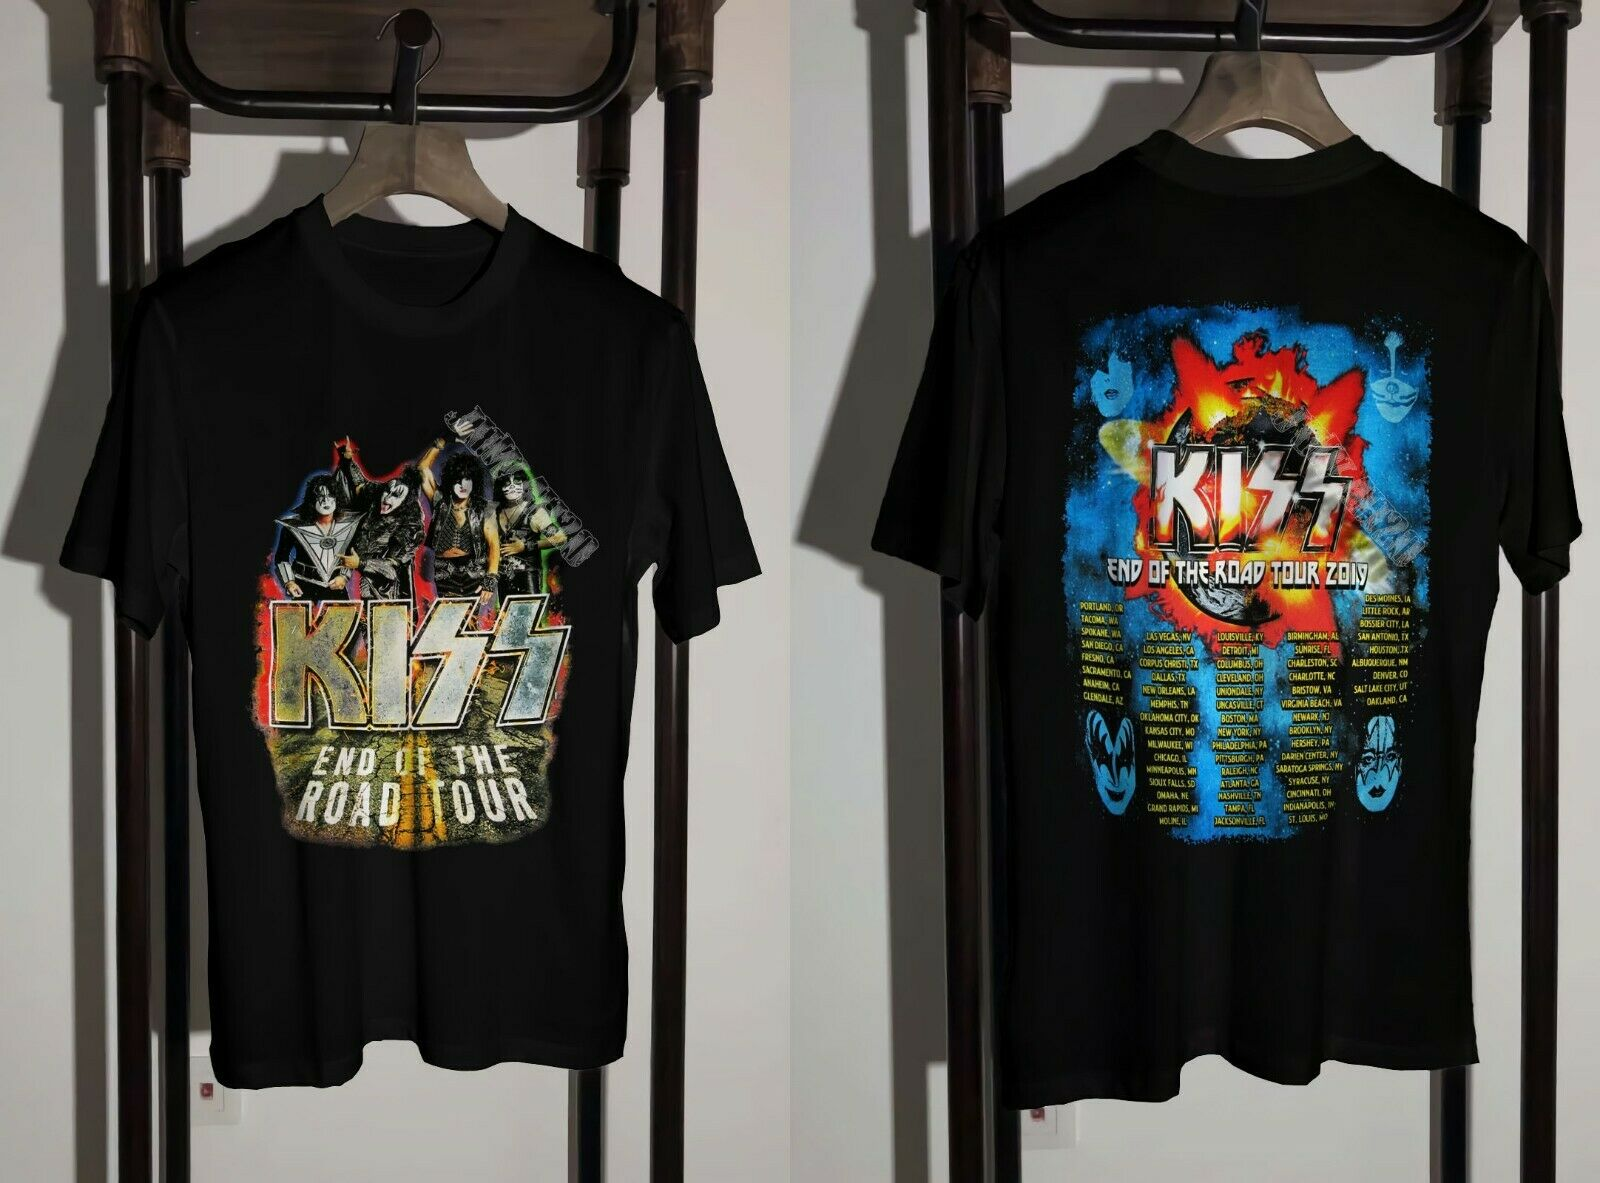 Kiss T Shirt 2019 End Of The Road Tour Clothing Unisex S To 2 Xl by Ali Express.Com